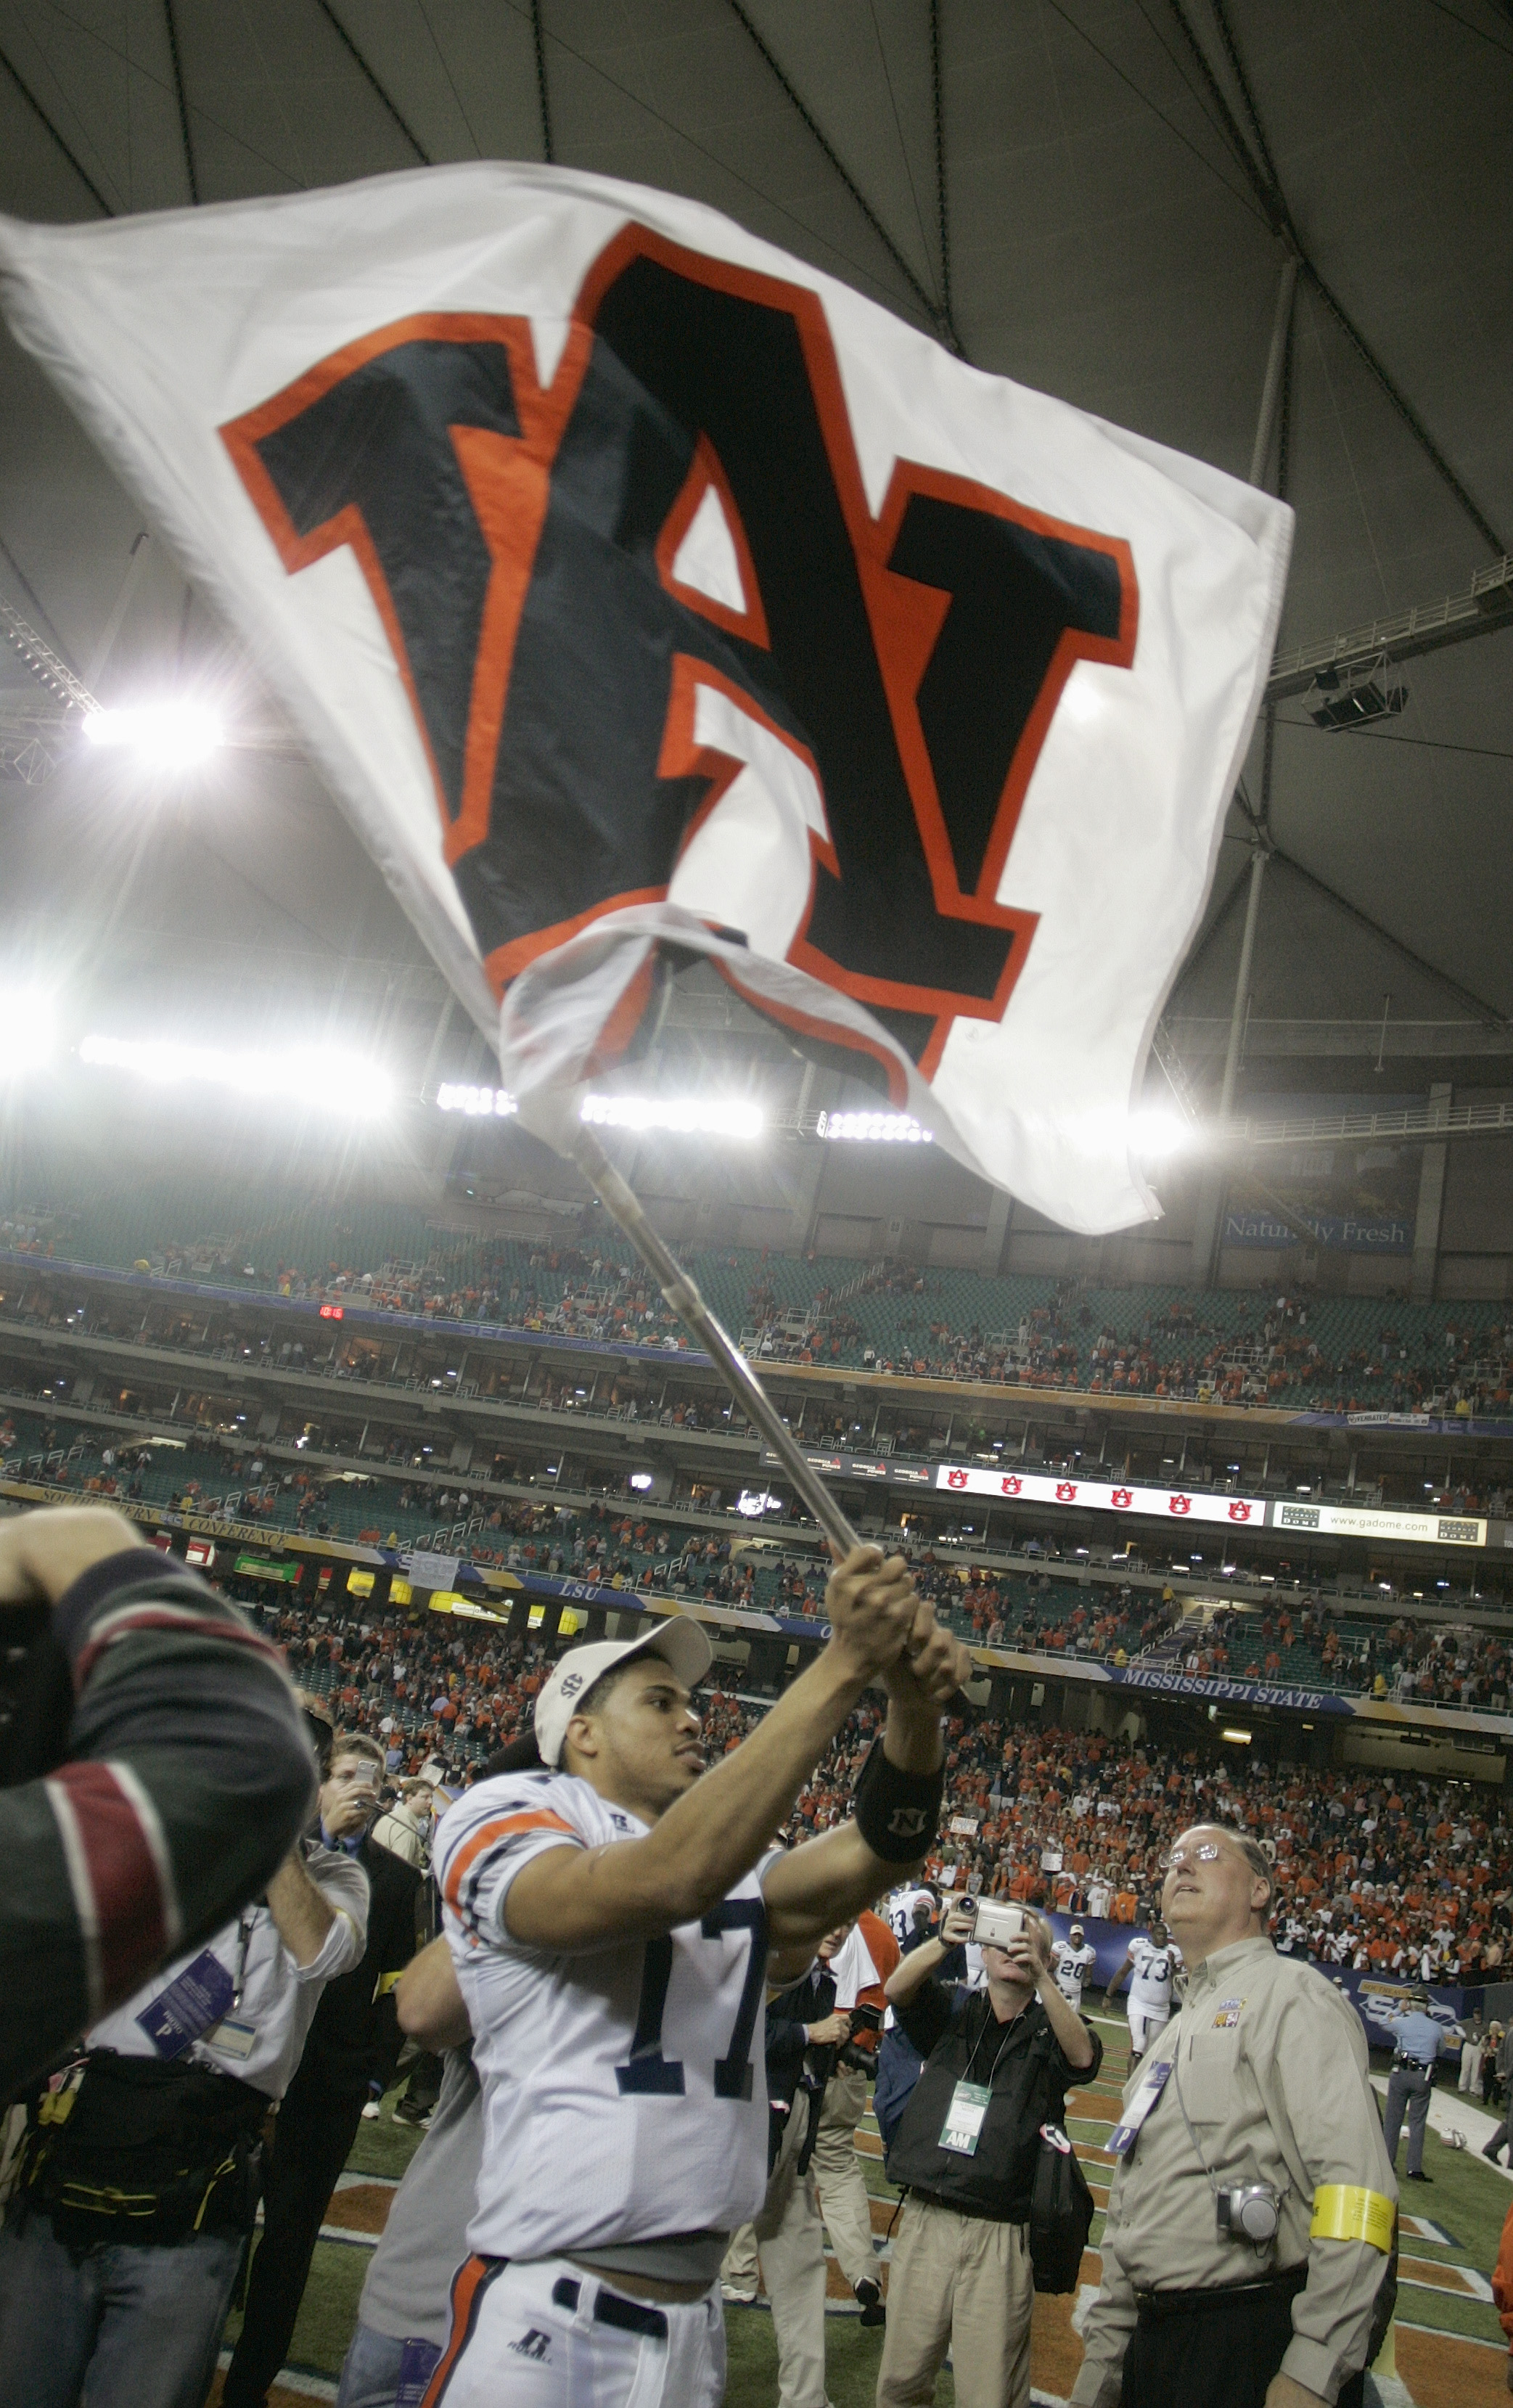 ATLANTA, GA - DECEMBER 4:  Quarterback Jason Campbell #17 of the Auburn Tigers waves his school flag after facing the Tennessee Volunteers in the 2004 SEC Championship Game at the Georgia Dome on December 4, 2004 in Atlanta, Georgia. Auburn defeated Tenne